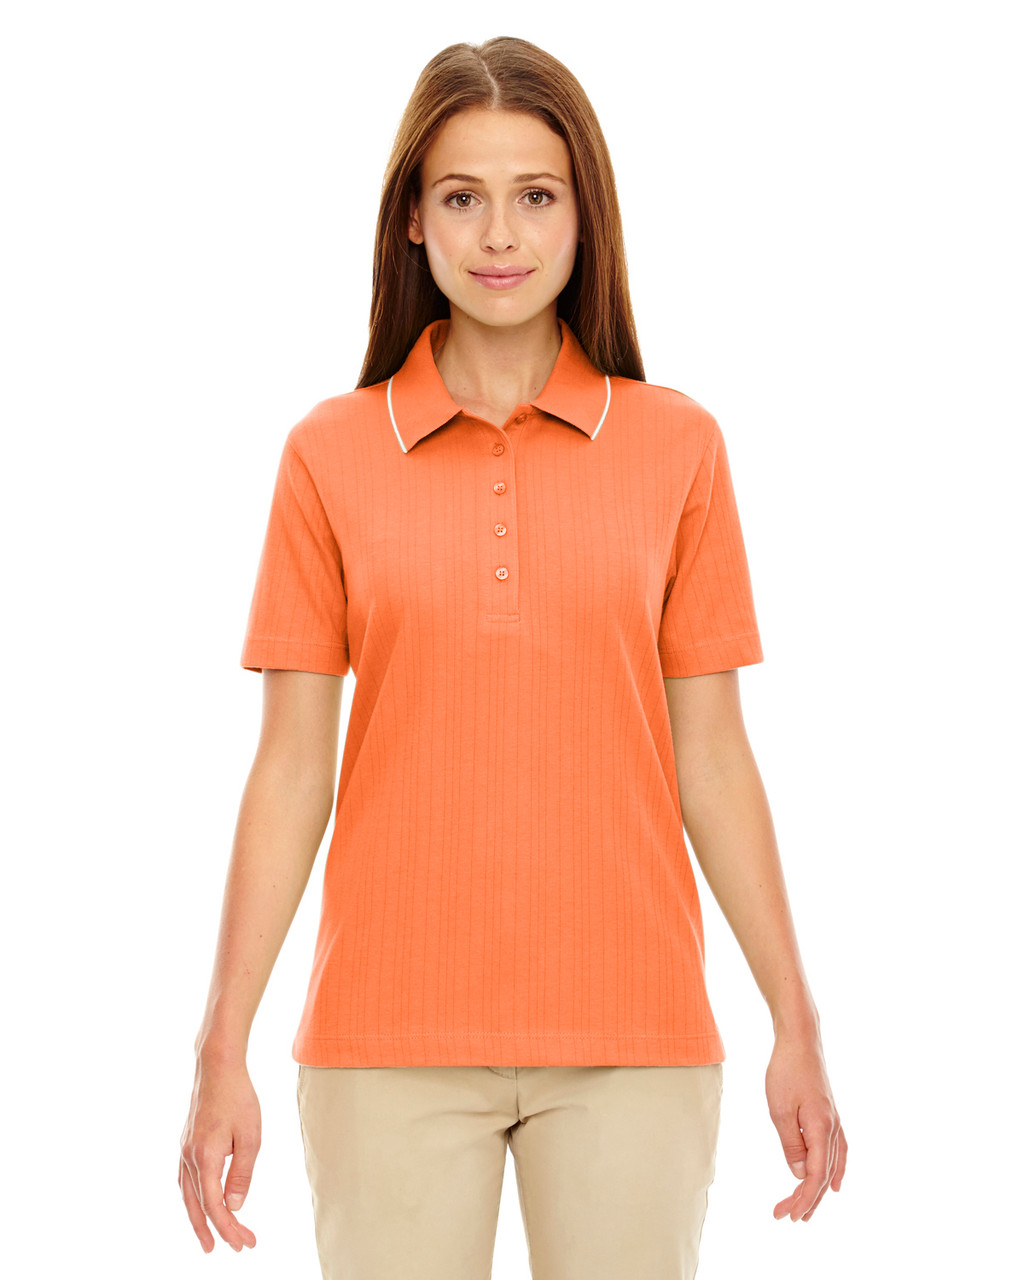 Hibiscus - 75045 Extreme Ladies' Edry™ Needle Out Interlock Polo Shirt | BlankClothing.ca